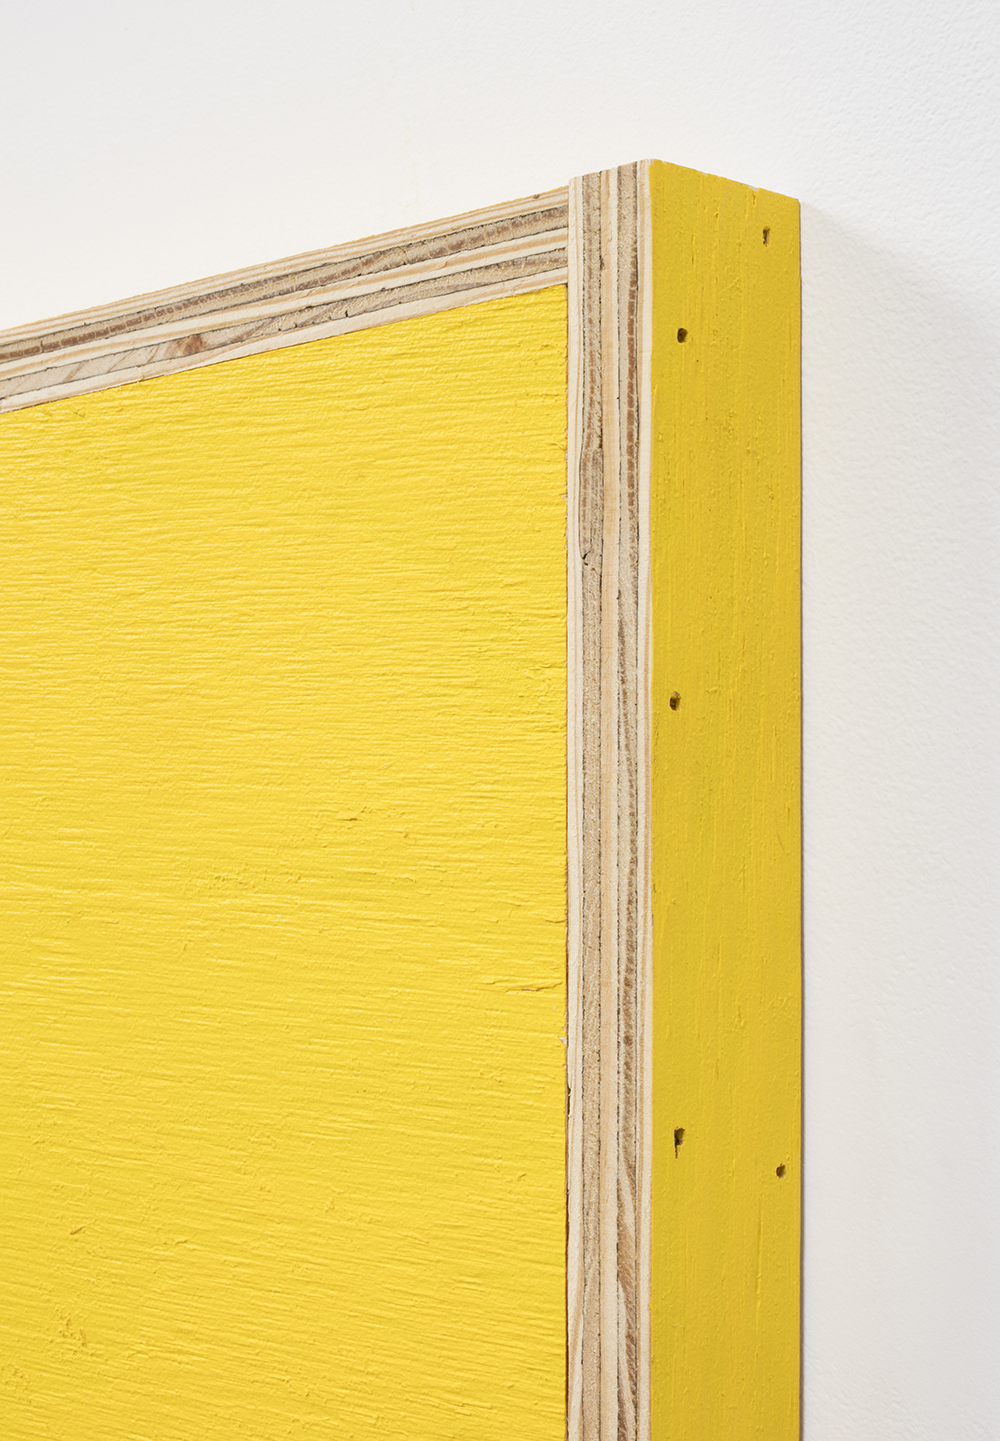 G.T. Pellizzi. <em>Transitional Geometry in Yellow</em>, 2017. Eggshell acrylic on plywood, 25 3/4 x 30 1/4 x 5 inches. Detail